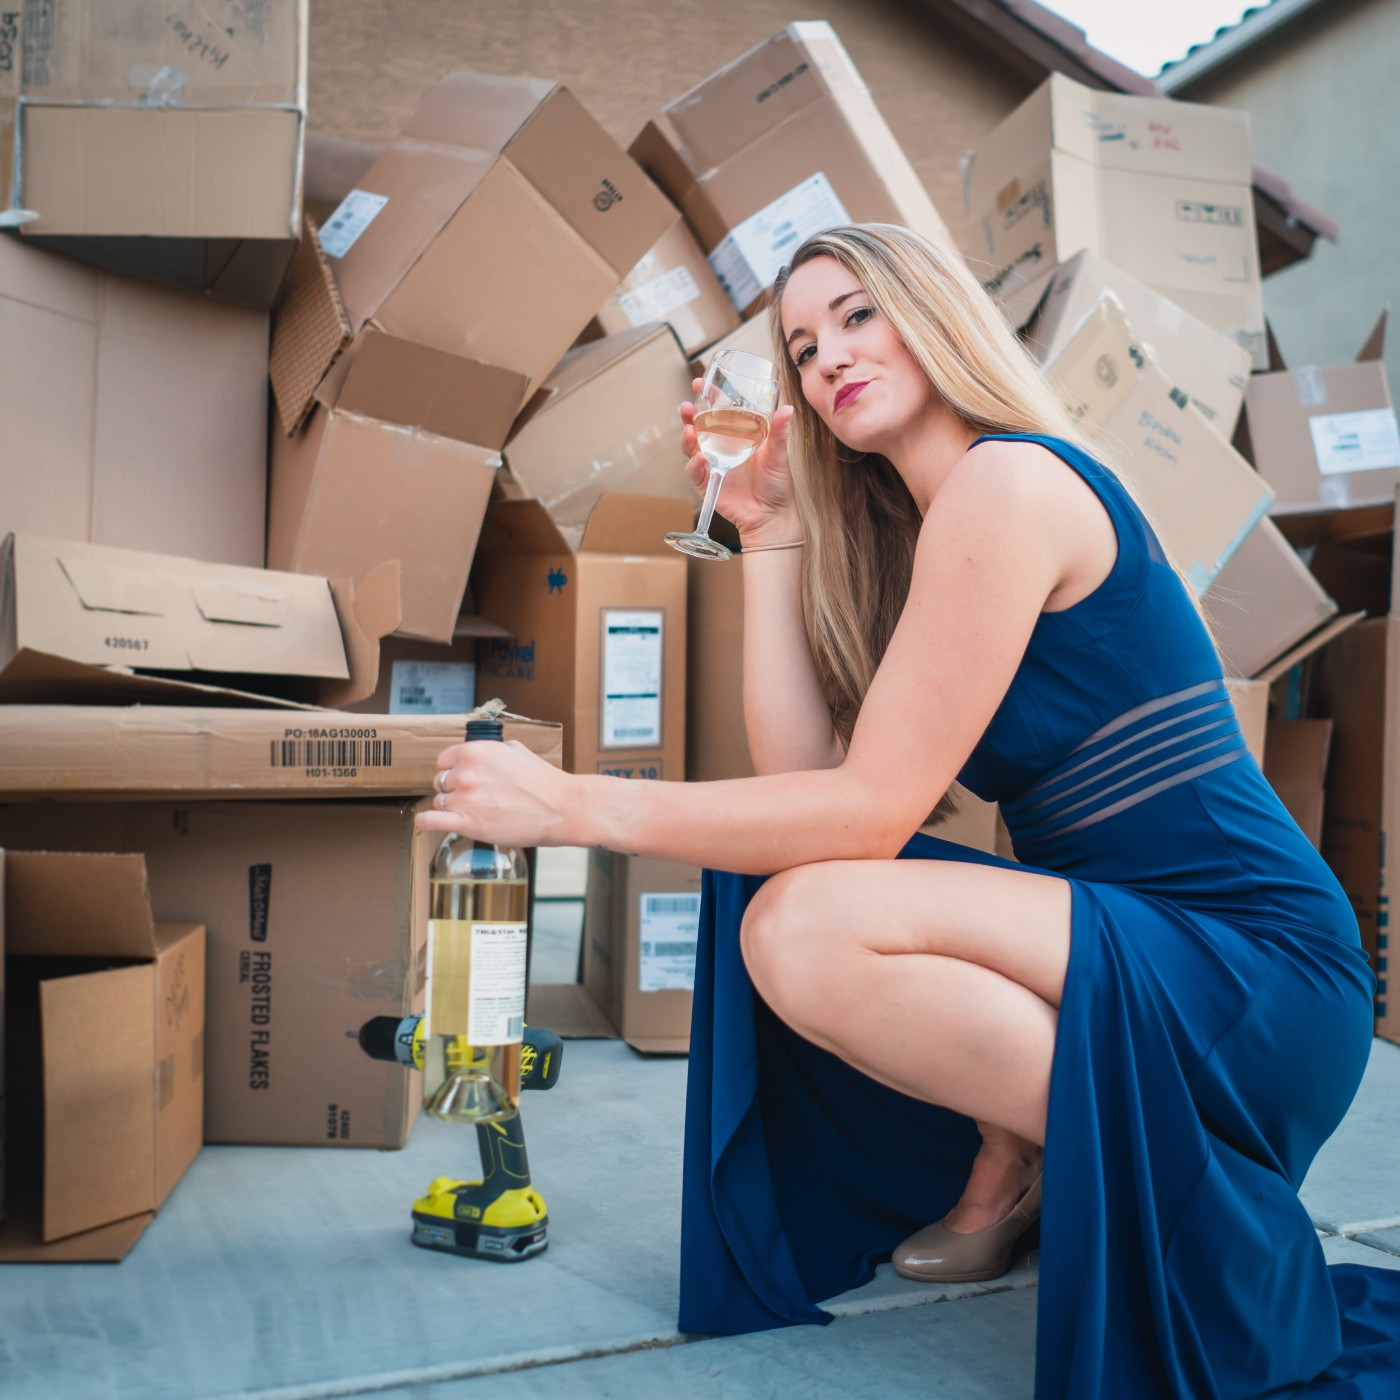 Young Woman in denim dress stoops amidst her packing boxes waitin to unpack